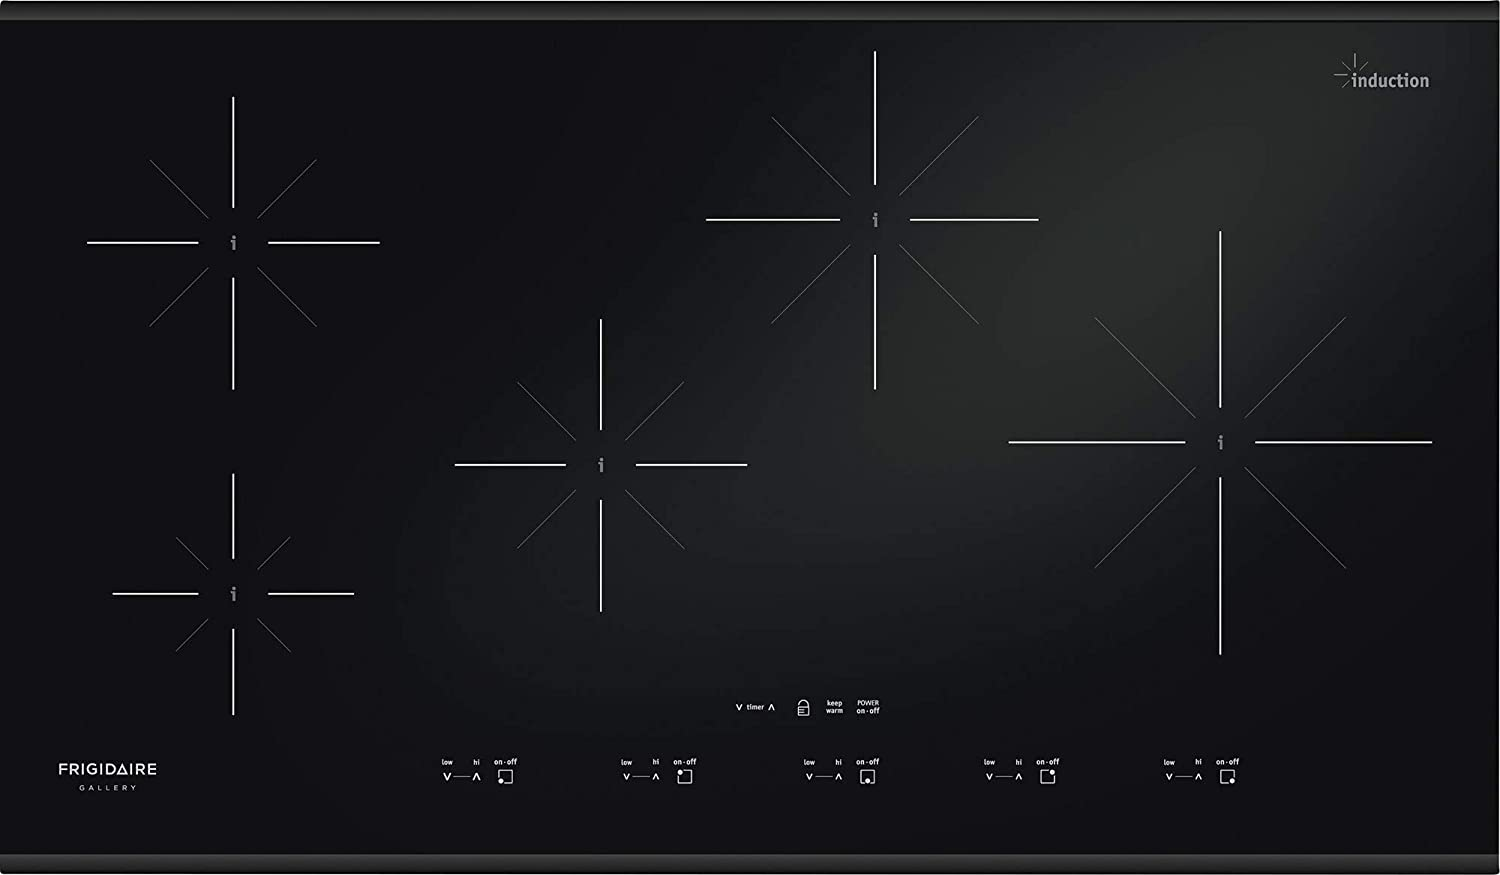 """Frigidaire Gallery 36 inch Induction Cooktop 5 Burners FGIC3667MB 36-3/4"""" W x 21-1/2"""" D x 4-3/8"""" H: Amazon.ca: Home & Kitchen"""